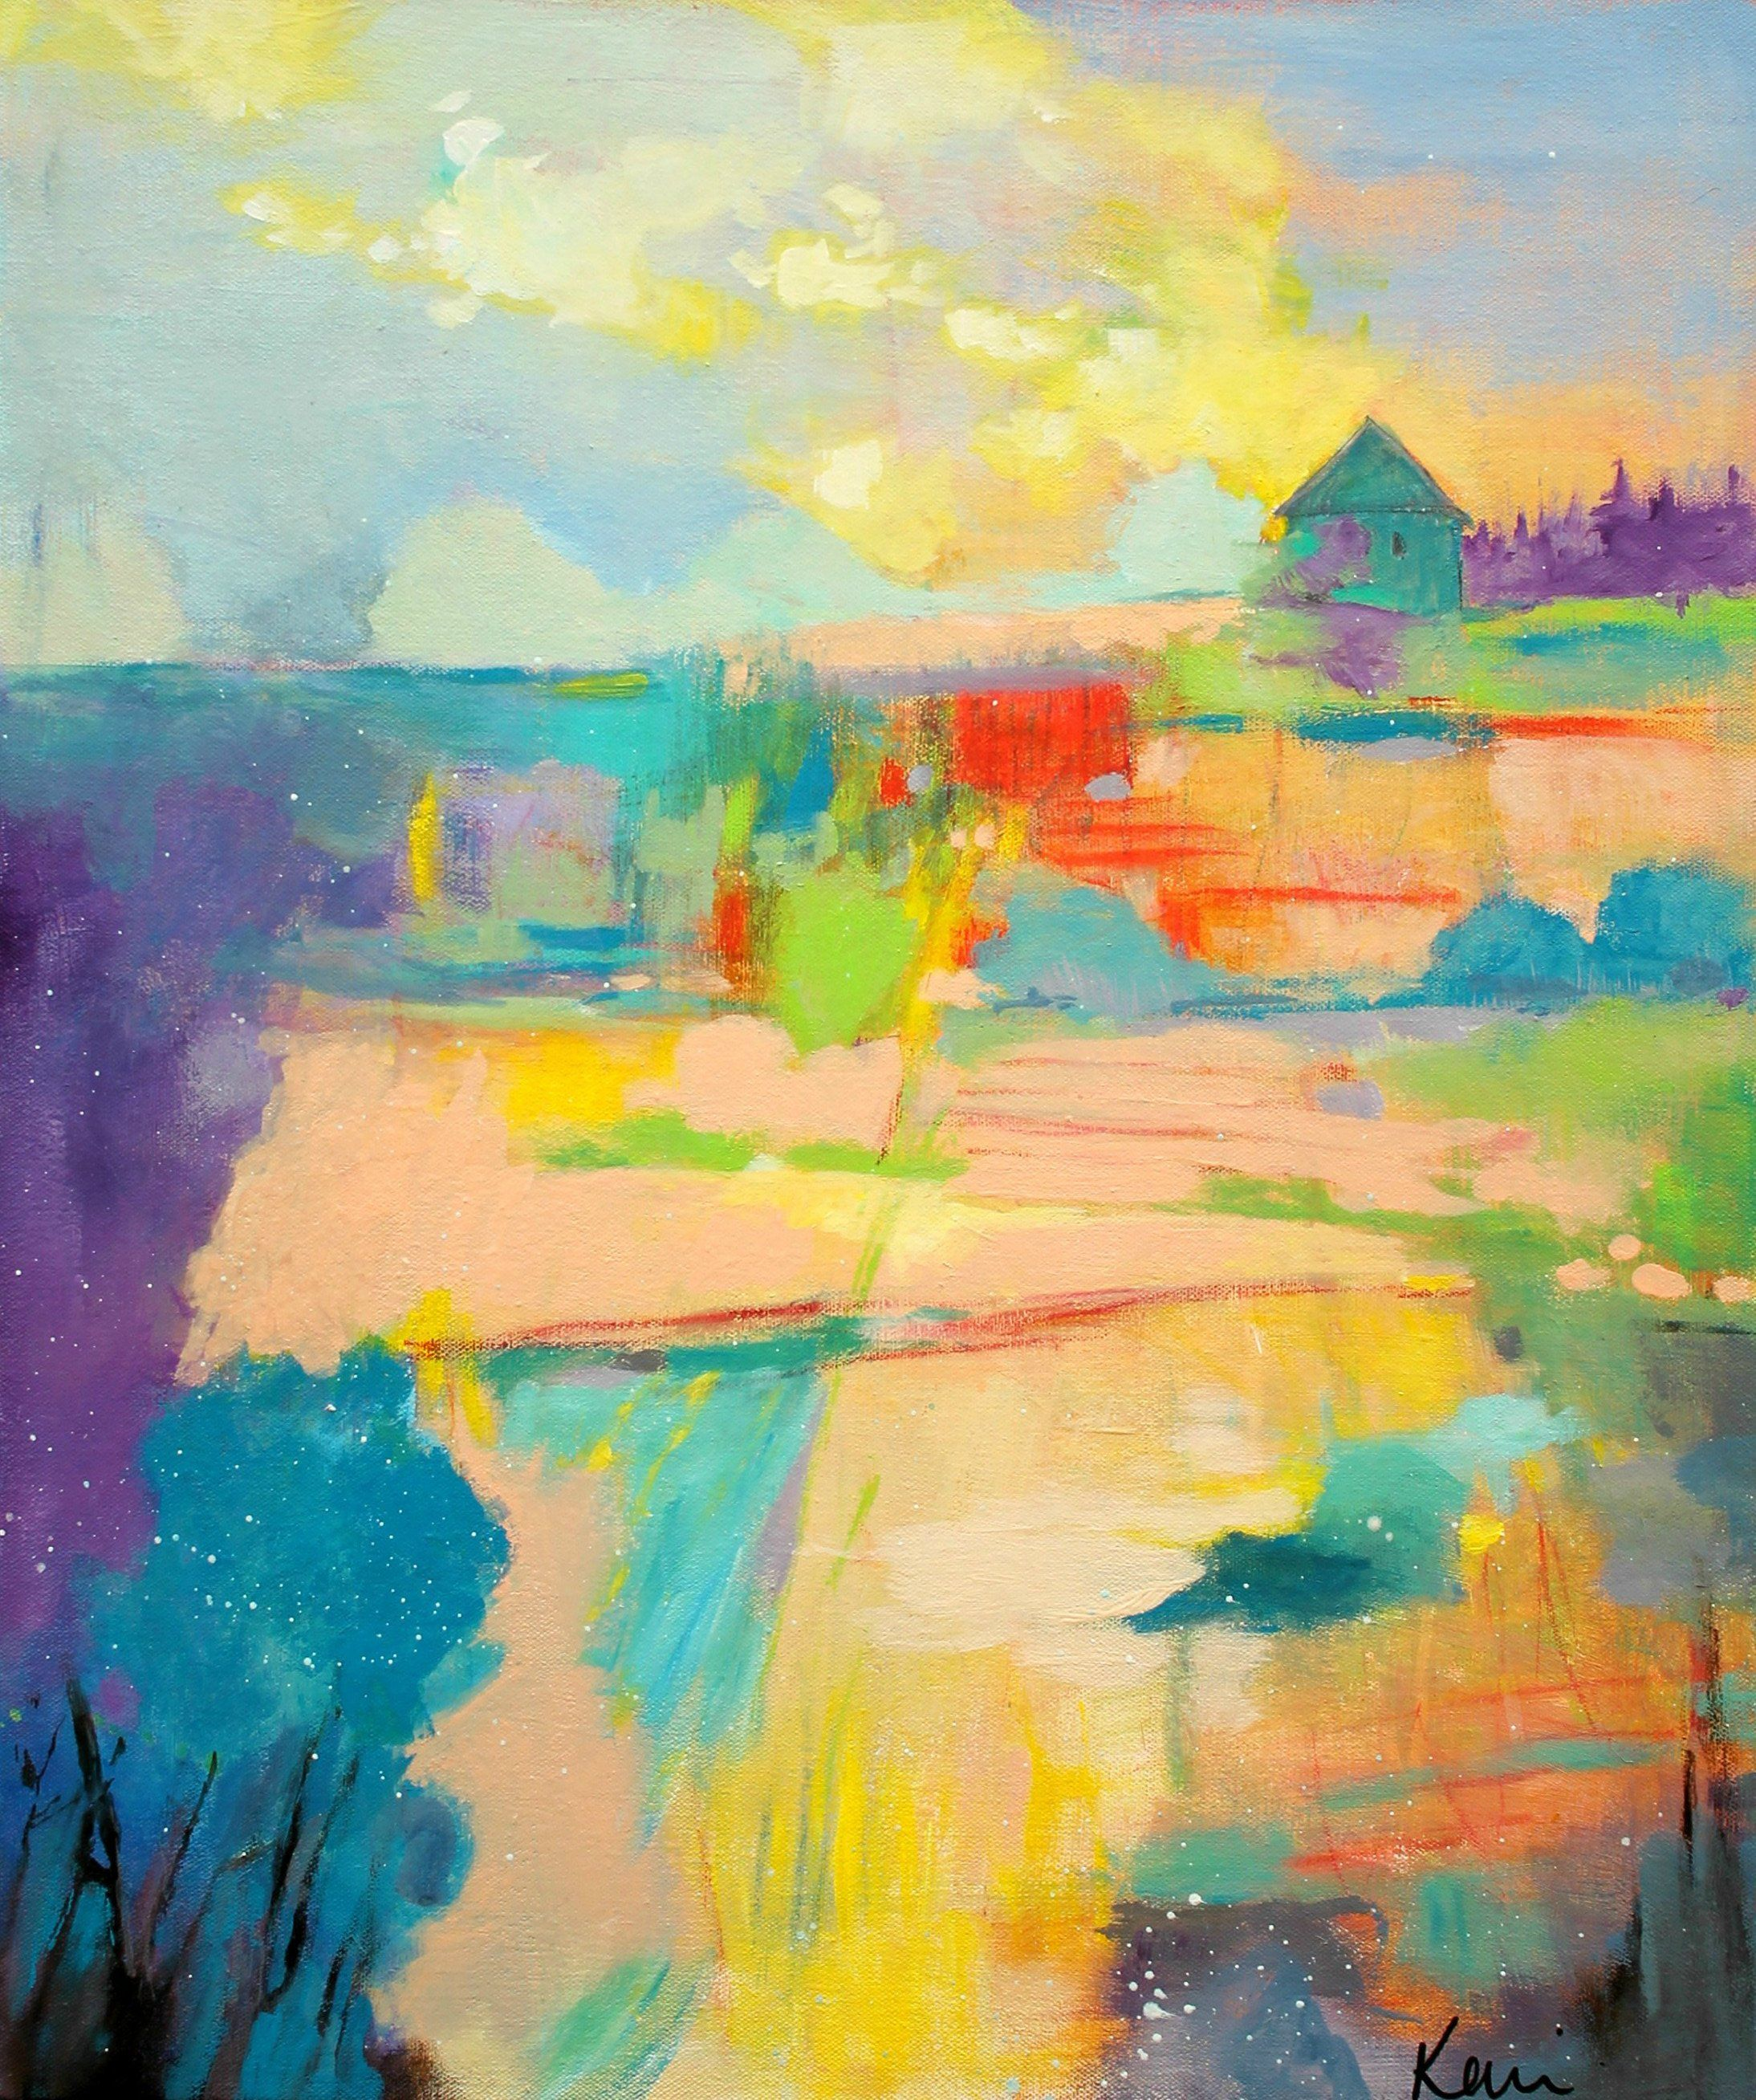 Colorful Abstract Landscape Painting On Canvas Country Scene Farm Trees Land Home Is Canvas Painting Landscape Abstract Painting Abstract Expressionist Art